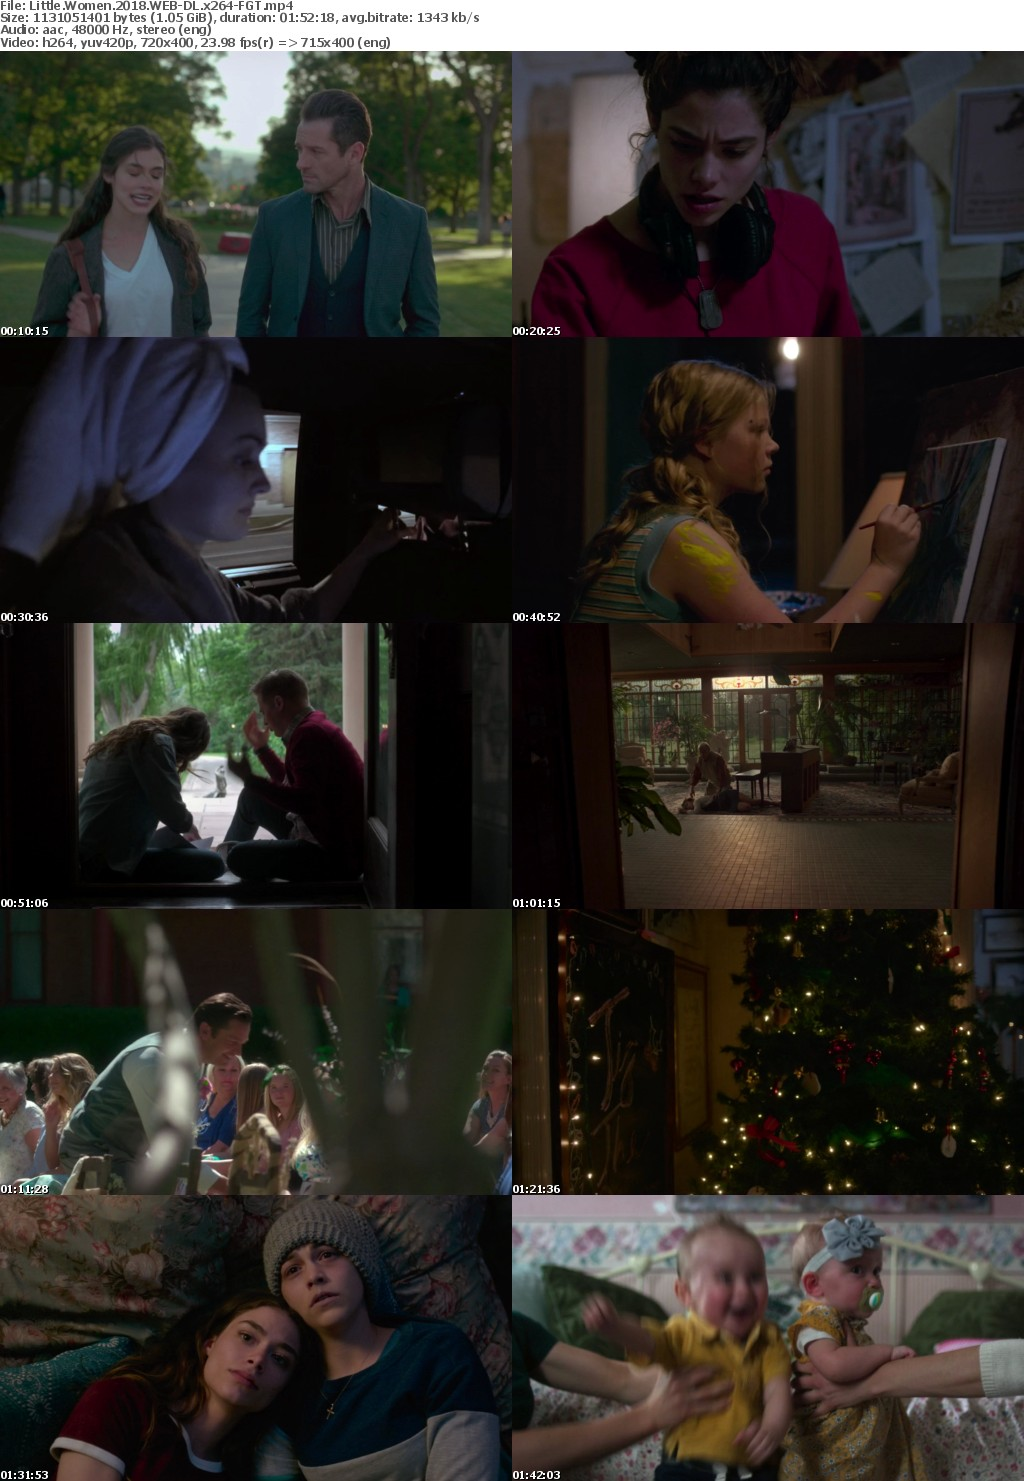 Little Women 2018 WEB-DL x264-FGT